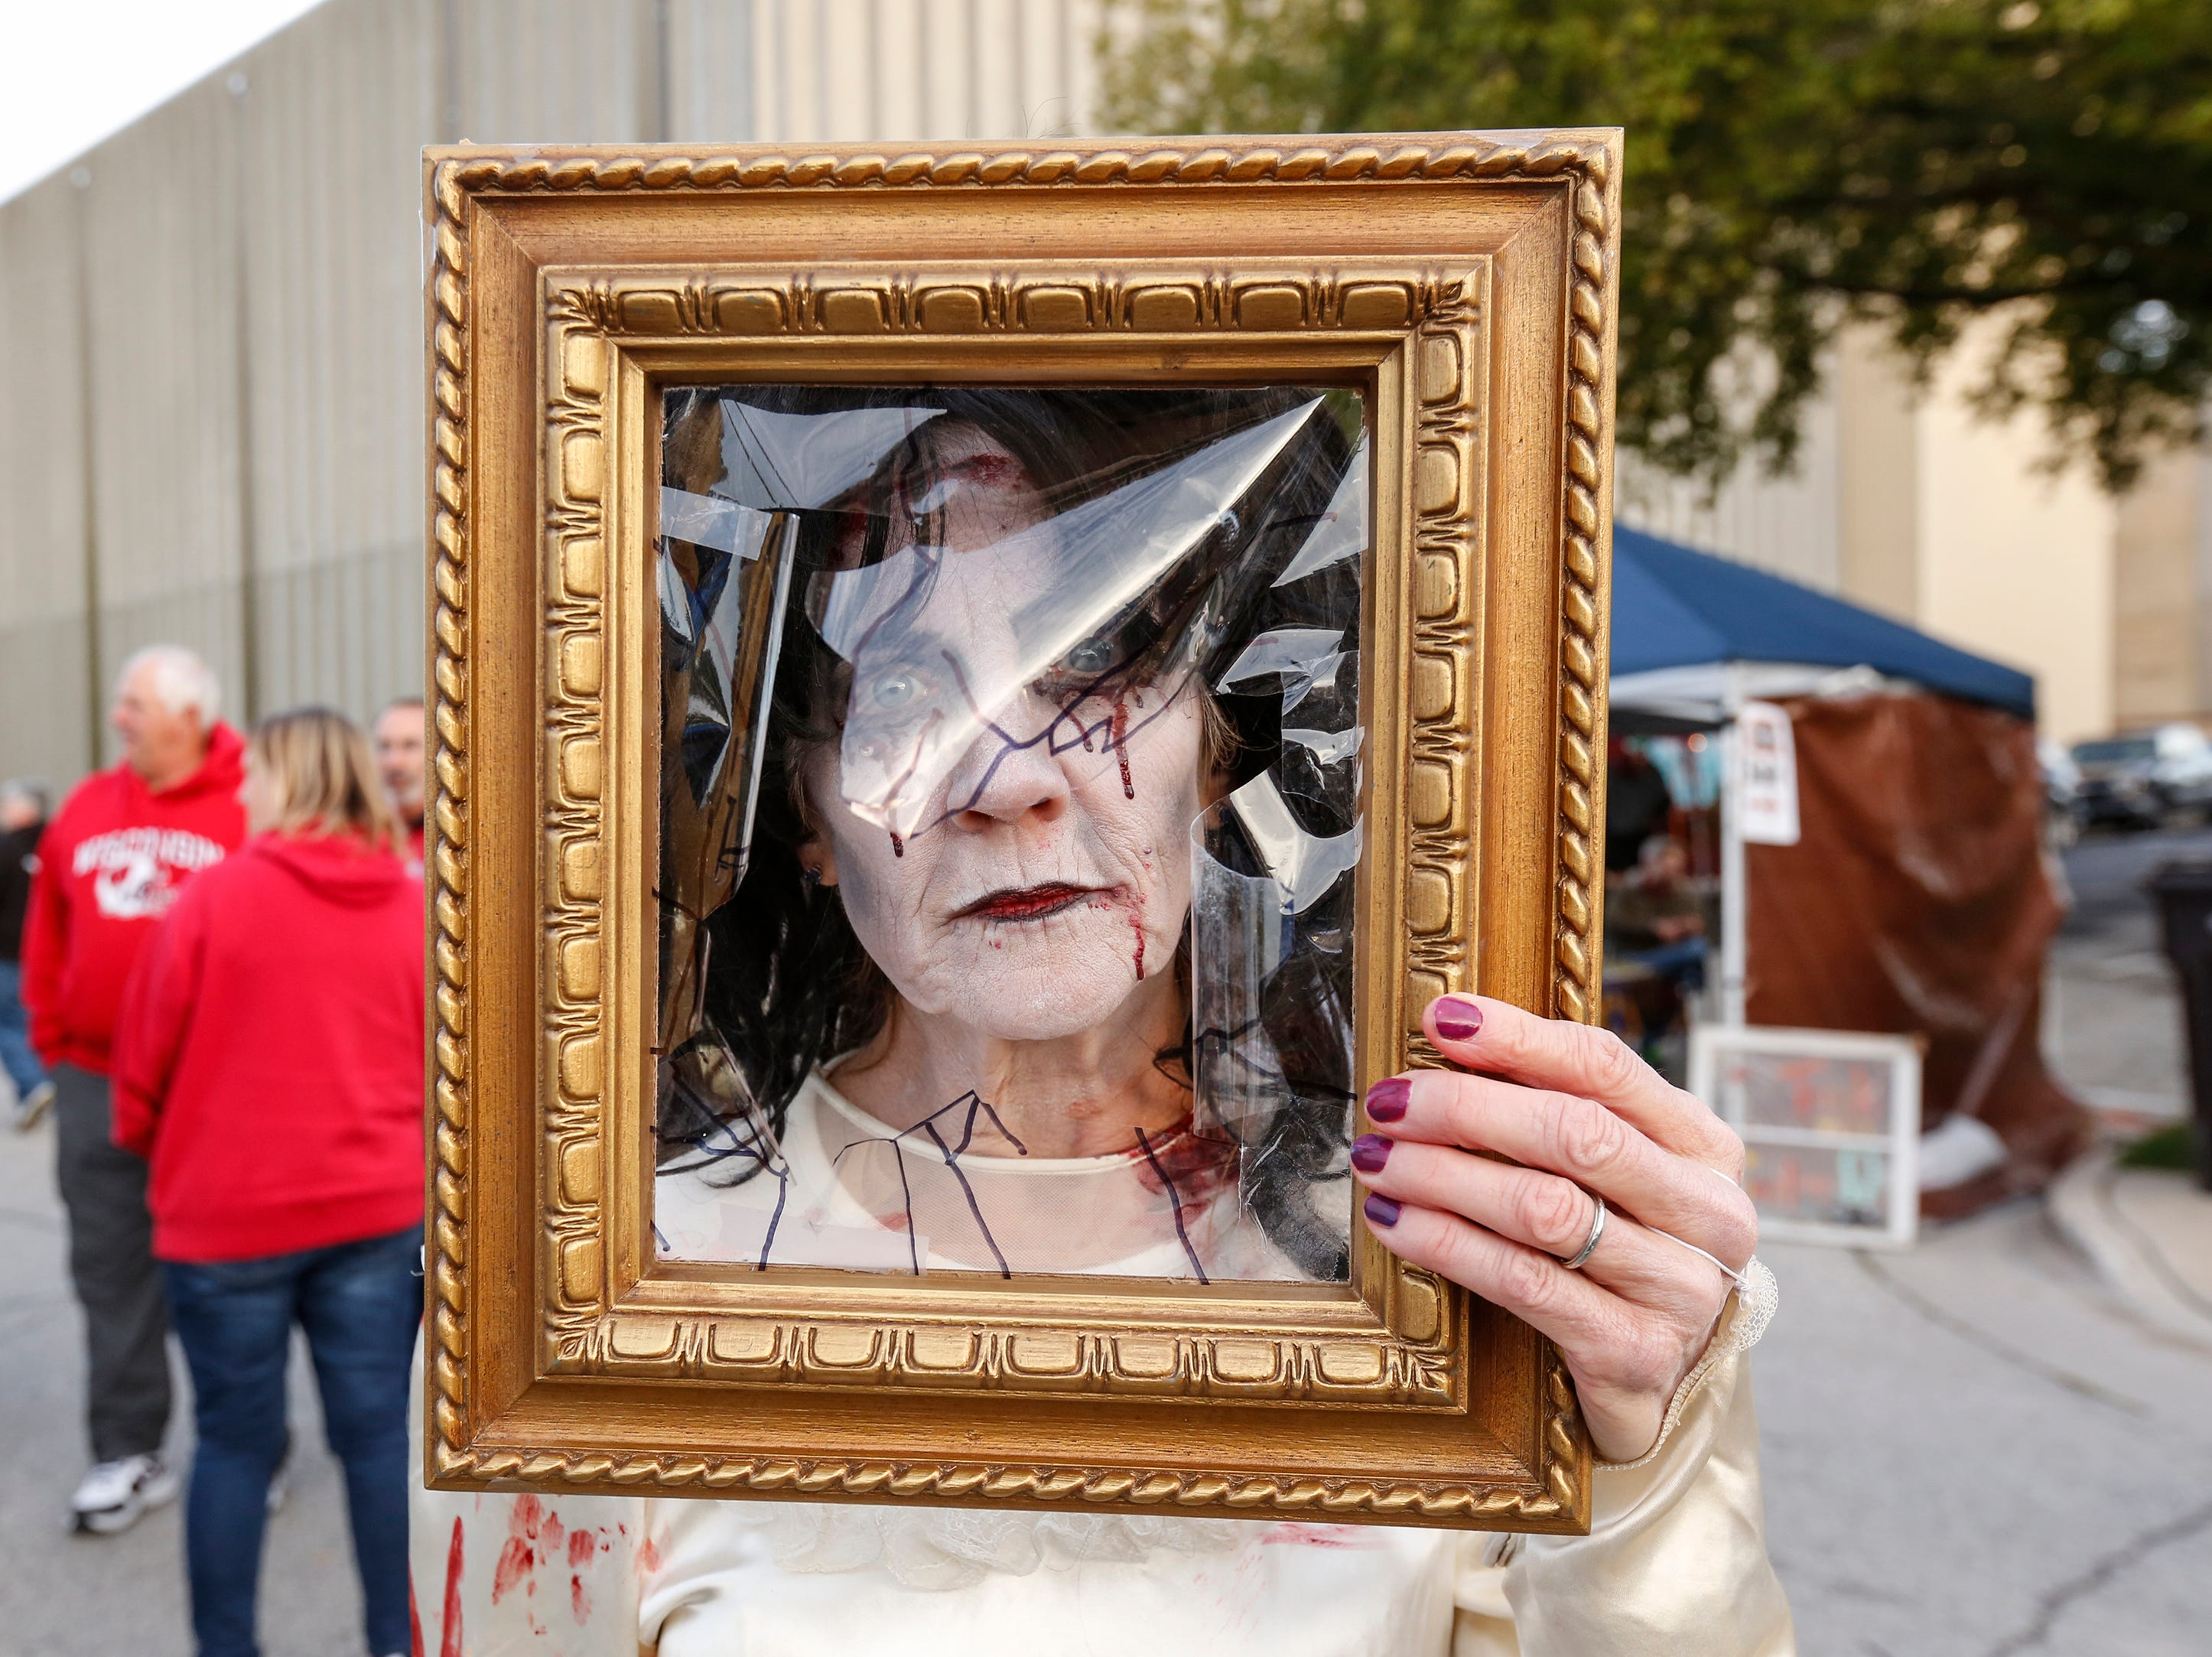 Bobbie Novak dressed as Bloody Mary poses for a picture during Windigo Fest Saturday, Oct. 6, 2018, in Manitowoc, Wis.